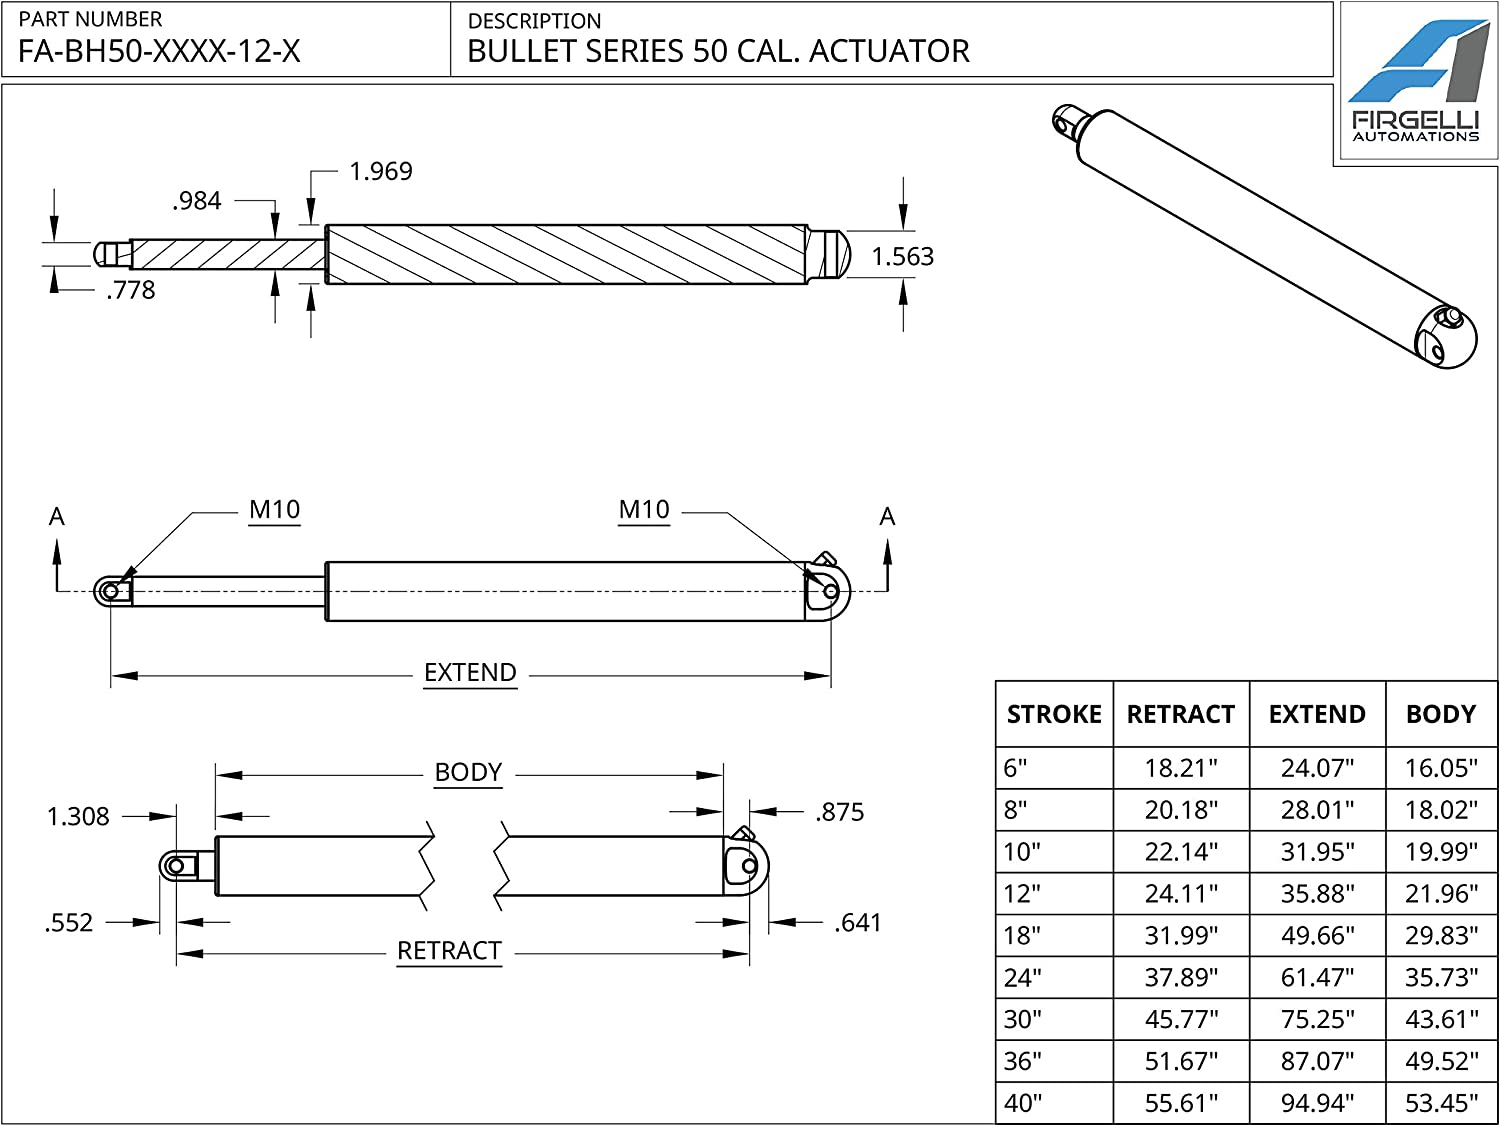 Firgelli Automations Bullet Series 50mm Diameter 1124 lb Force 24V Linear Actuator 18 inch